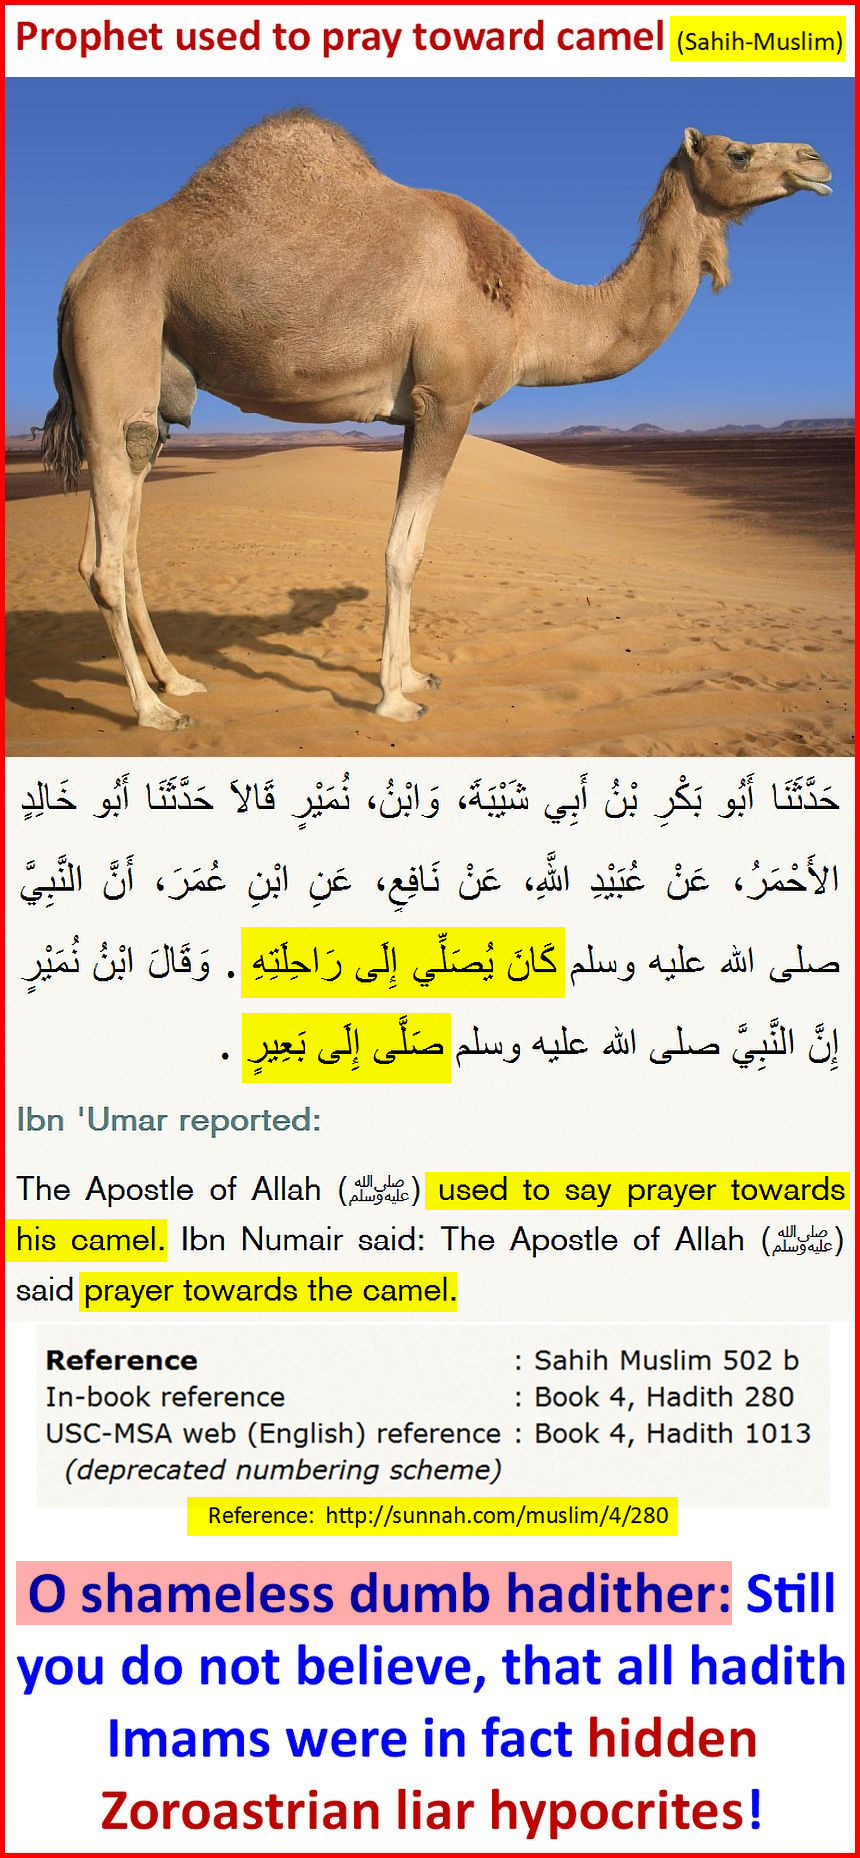 PrayingTowardCamel